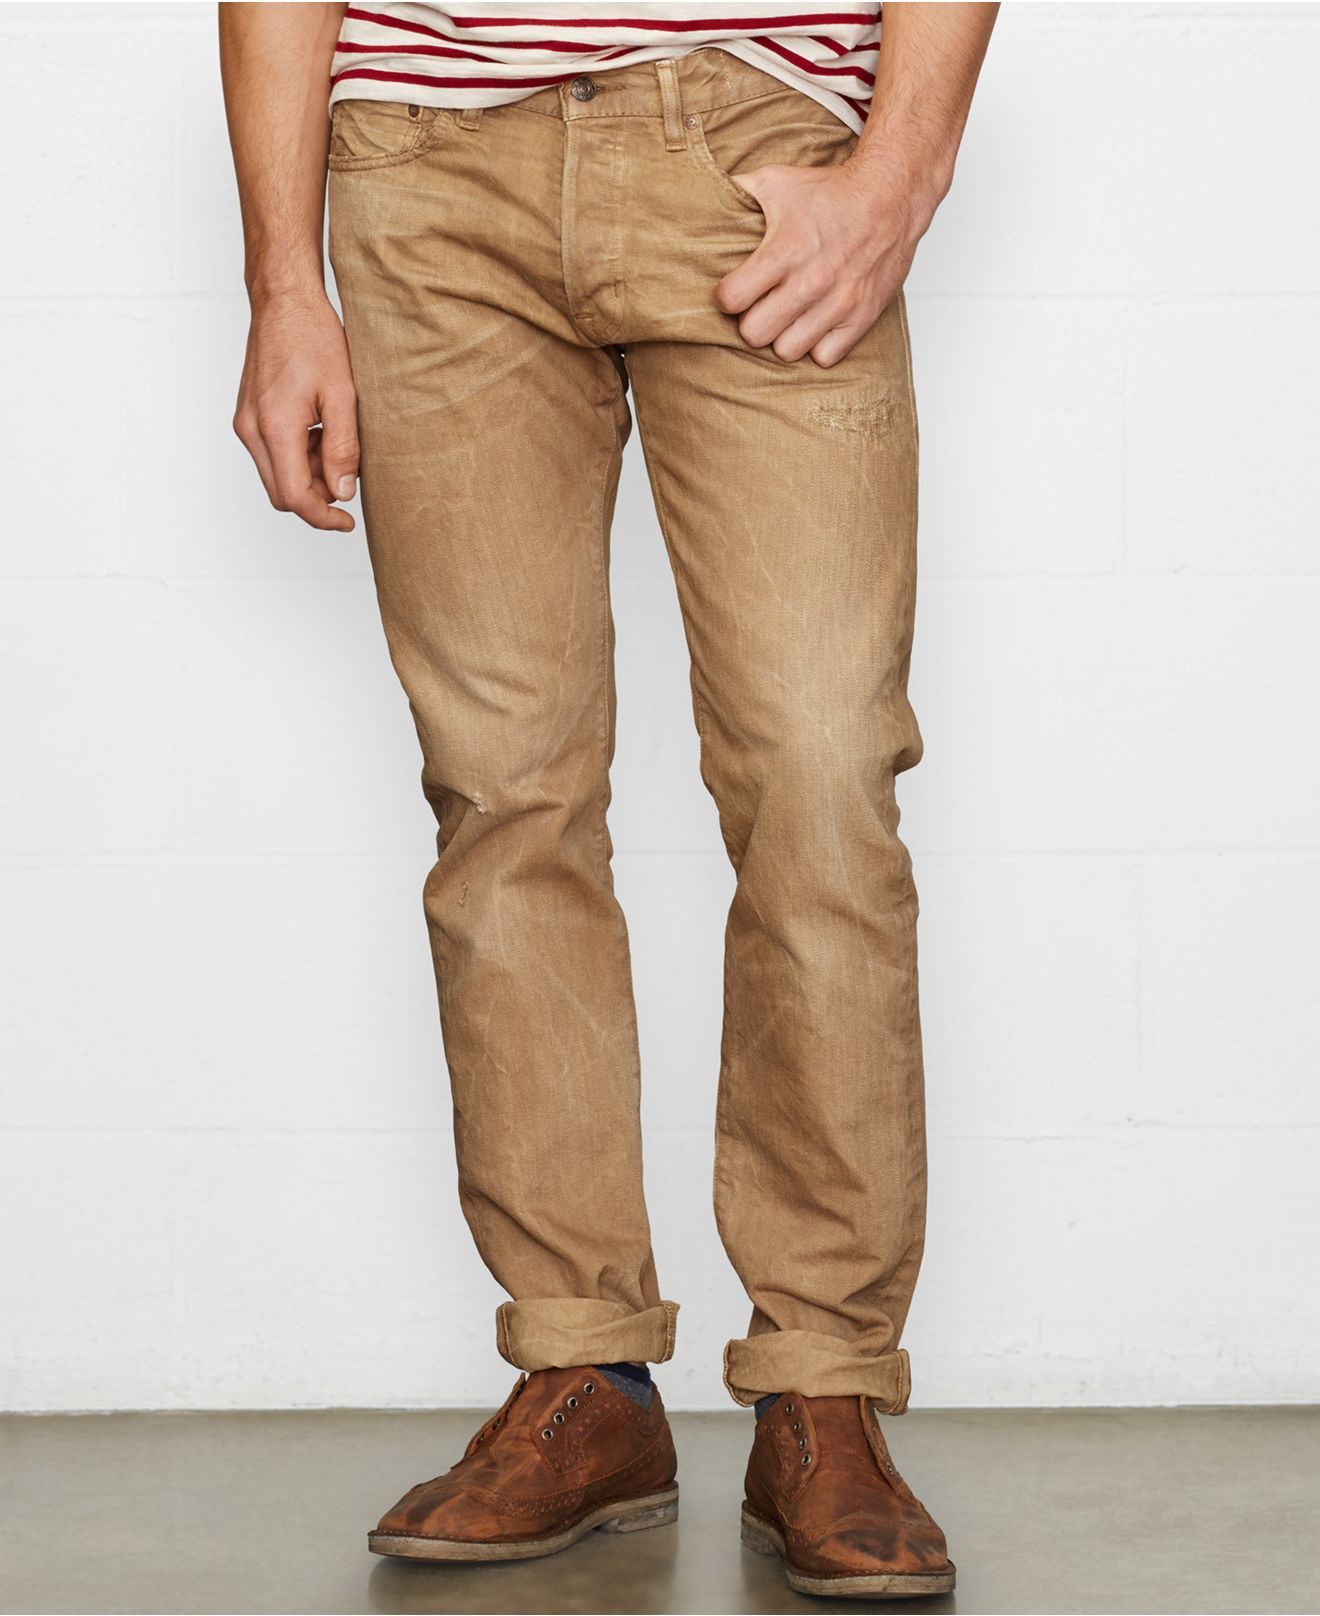 Tan Jeans For Men | Bbg Clothing